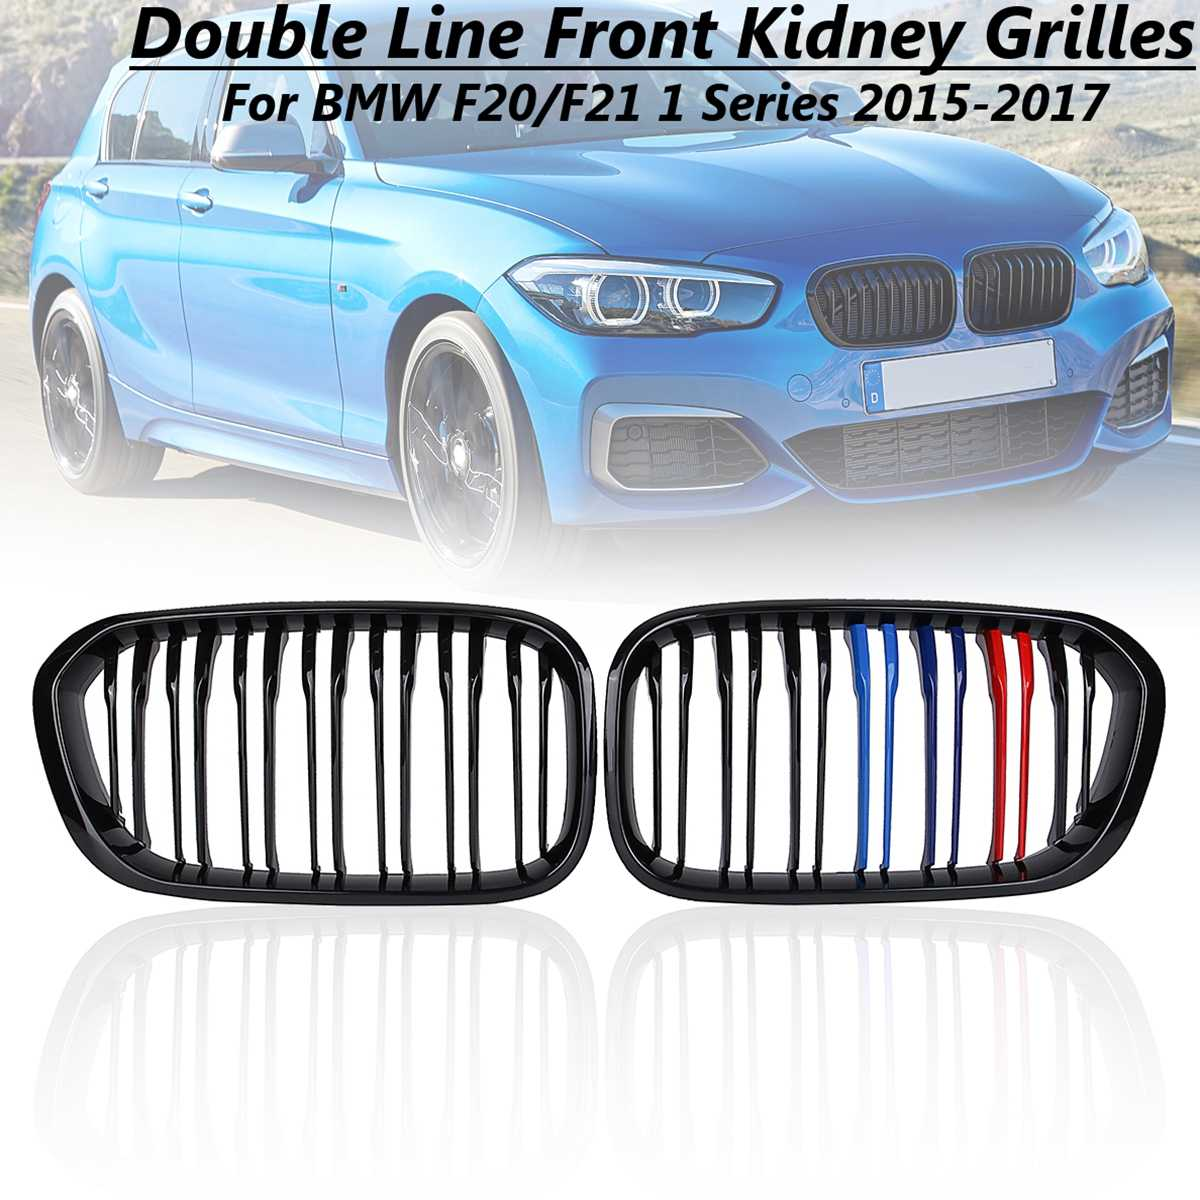 For BMW F21 F21 1 2015-2017 Twin SlatsFor Modification Car Styling Car Front Bumper Series Kidney Grilles Gloss Black M-ColorFor BMW F21 F21 1 2015-2017 Twin SlatsFor Modification Car Styling Car Front Bumper Series Kidney Grilles Gloss Black M-Color